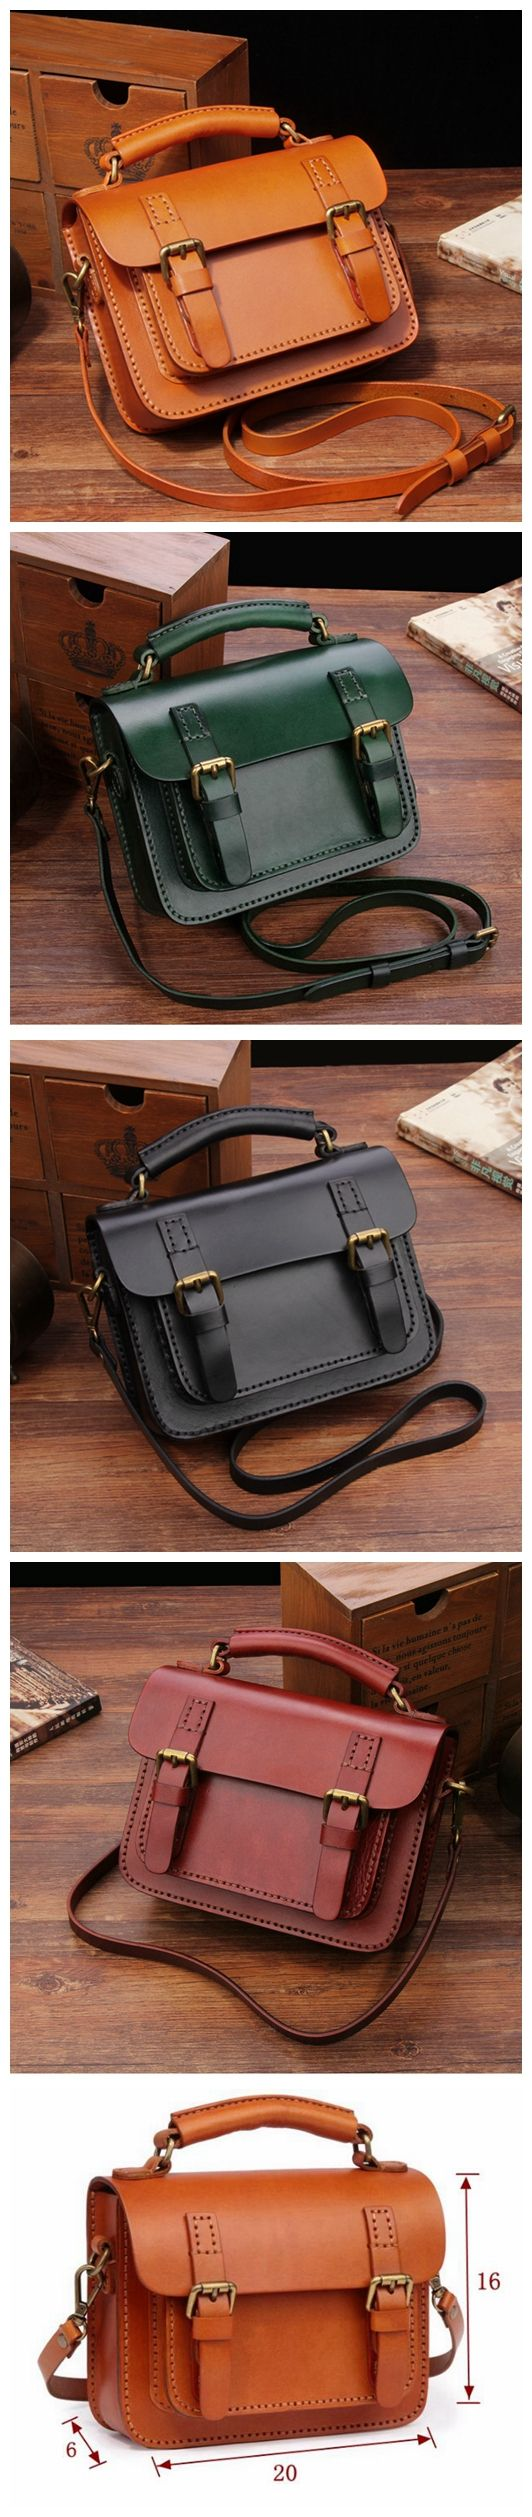 Handcrafted Leather Messenger Women's Fashion Bag Handbag Leather Shoulder Bag 14084